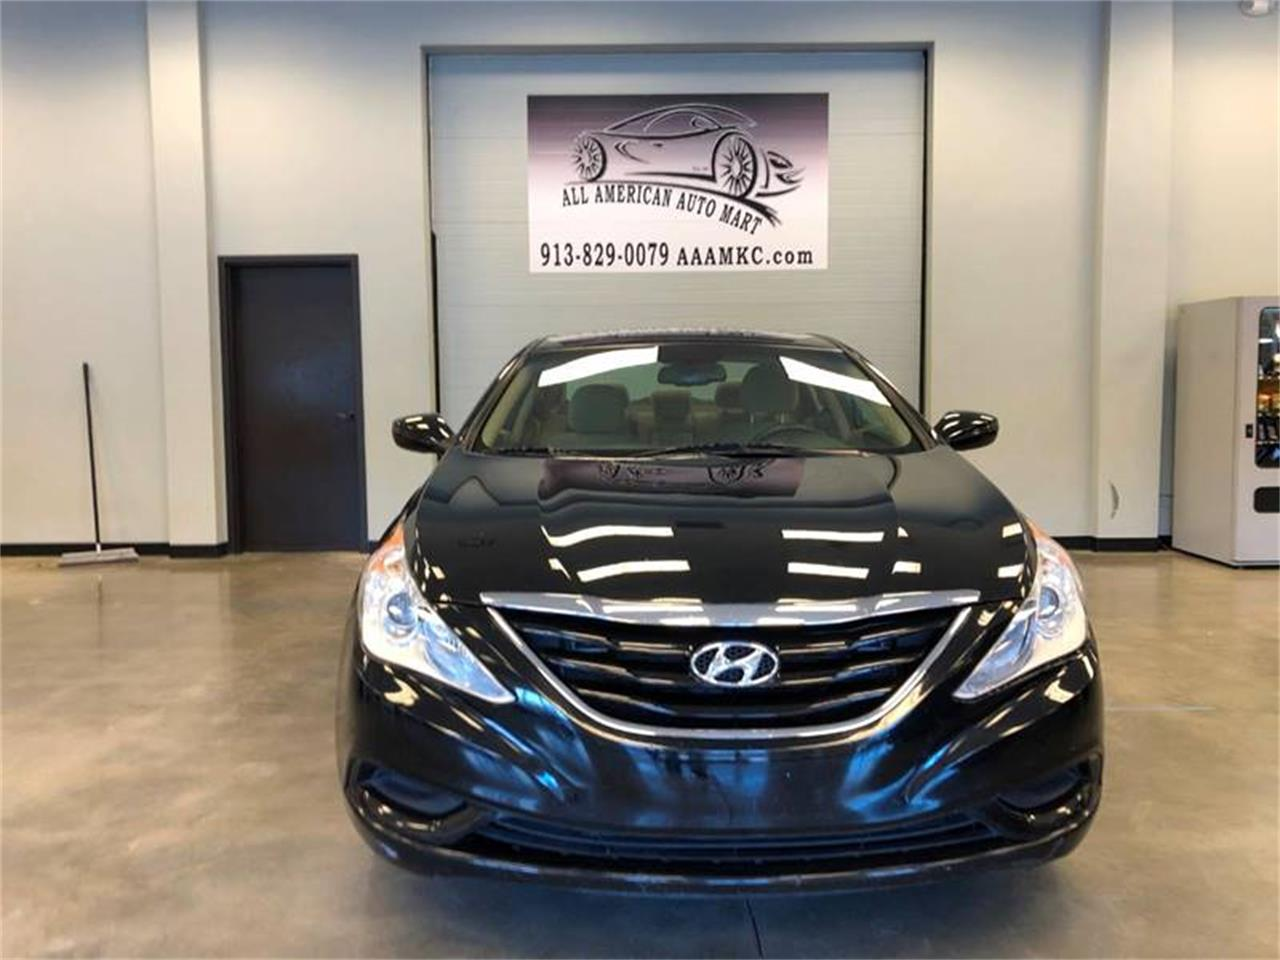 Large Picture Of 13 Hyundai Sonata Offered By All American Auto Mart Inc Peje